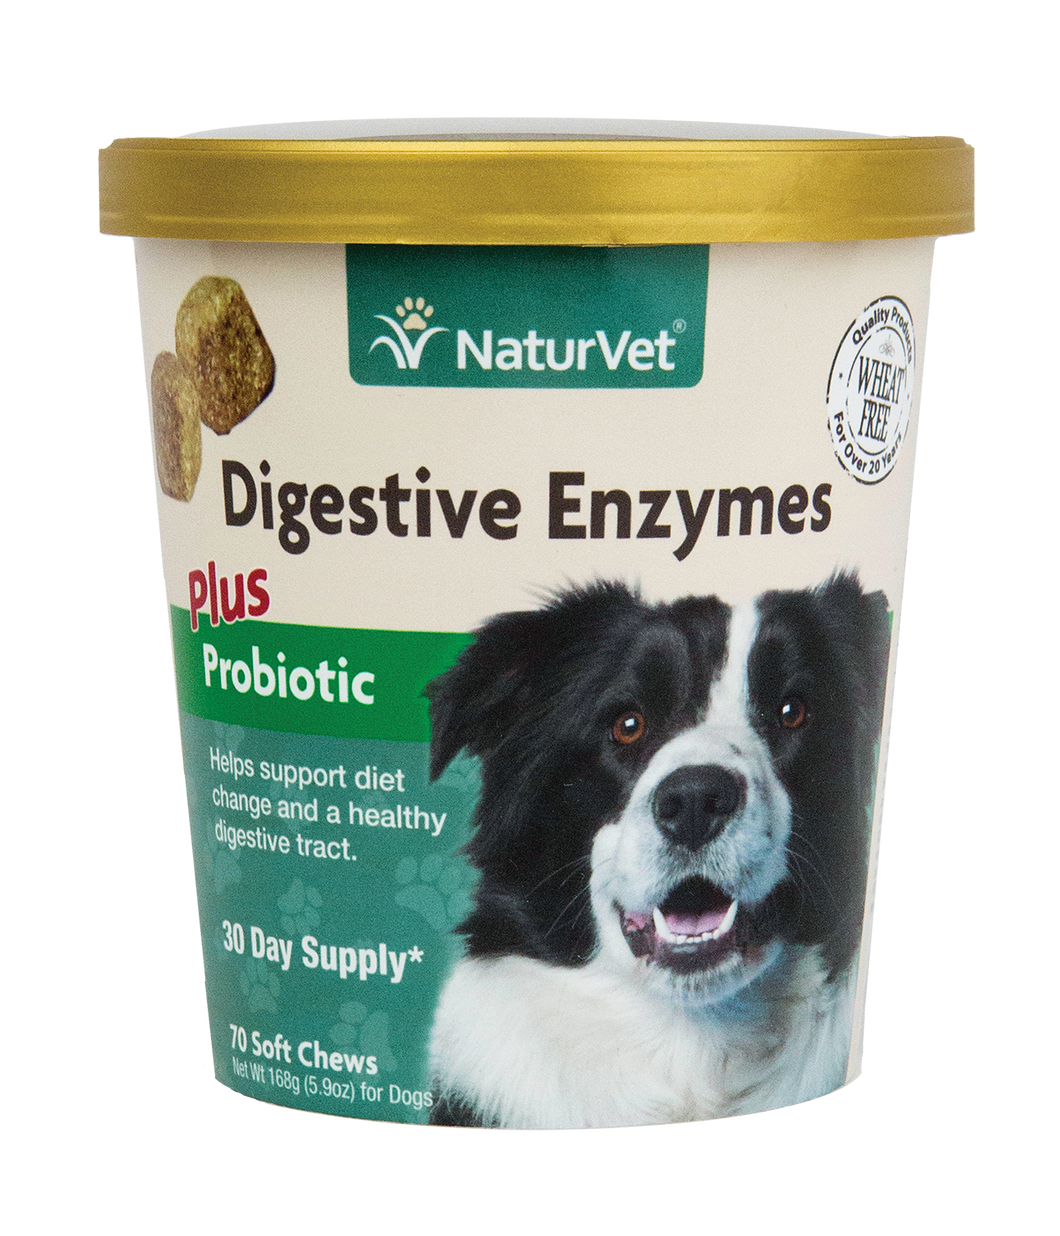 Naturvet Soft Chews - Digestive Enzymes Plus Probiotics 70ct